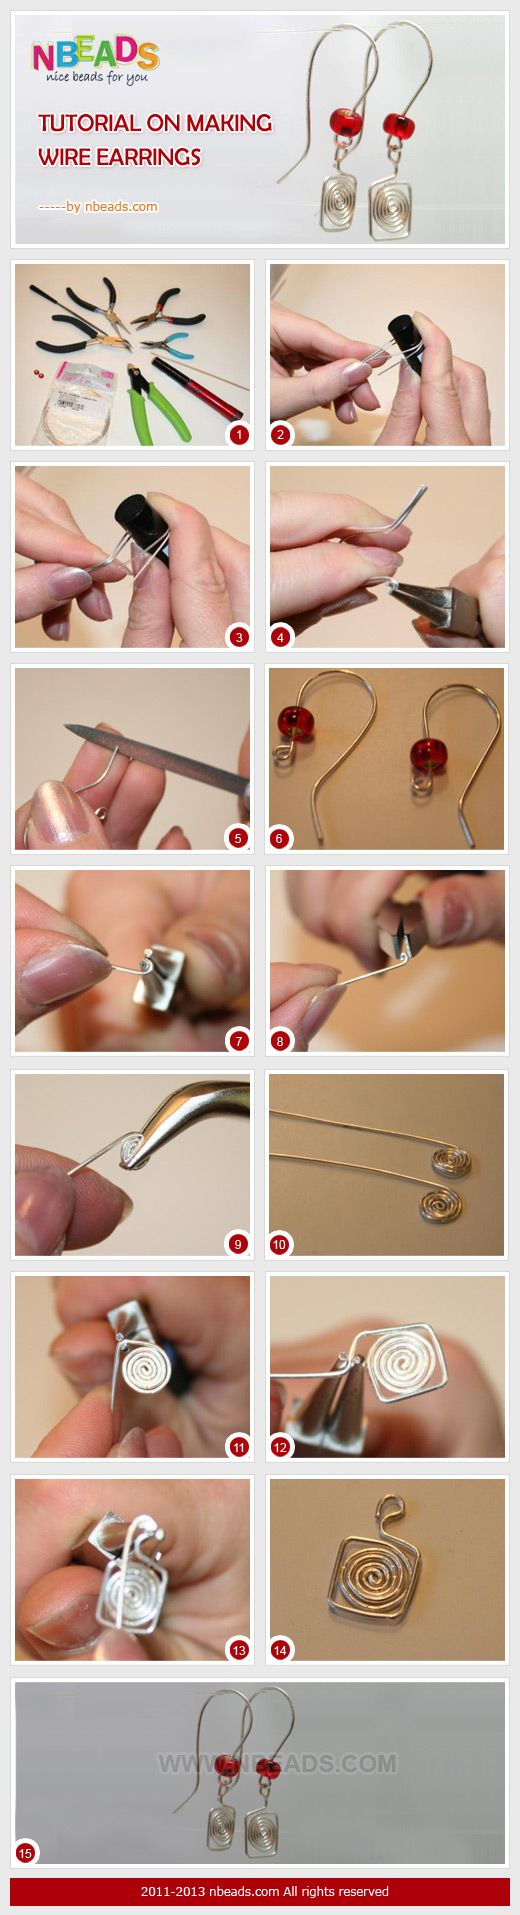 Tutorial on making wire earrings